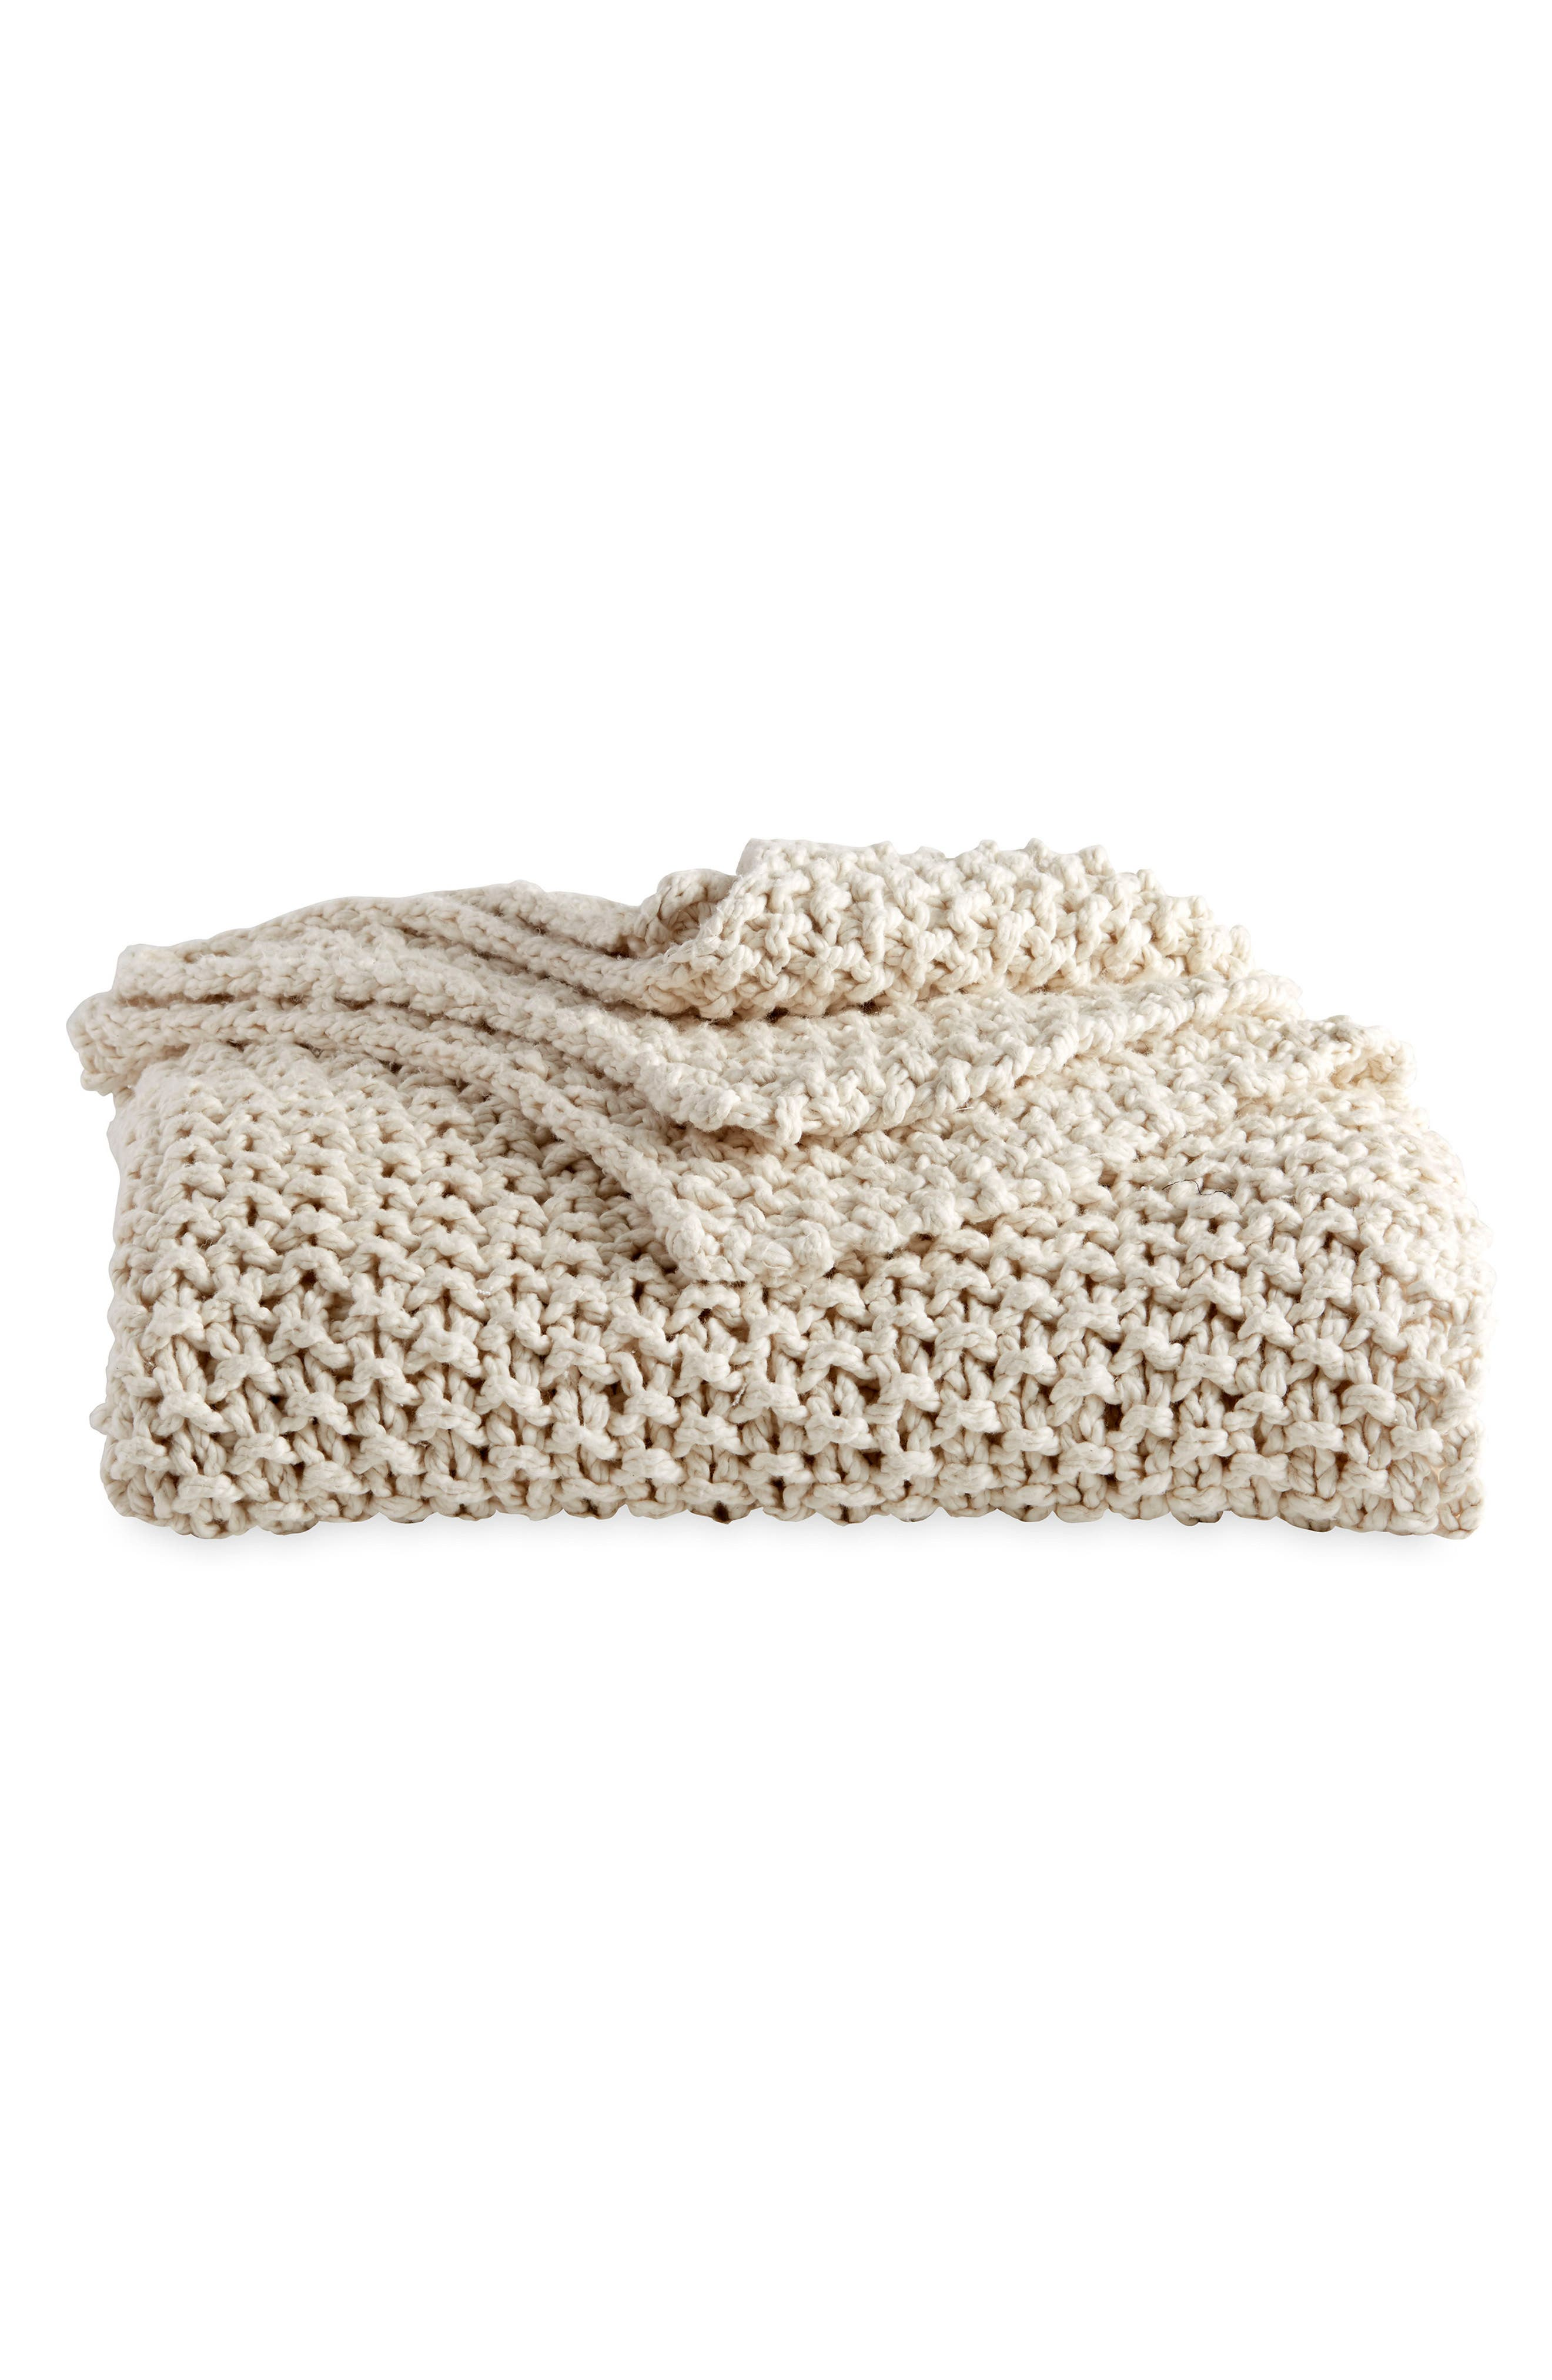 PURE Chunky Knit Throw Blanket,                         Main,                         color, NATURAL